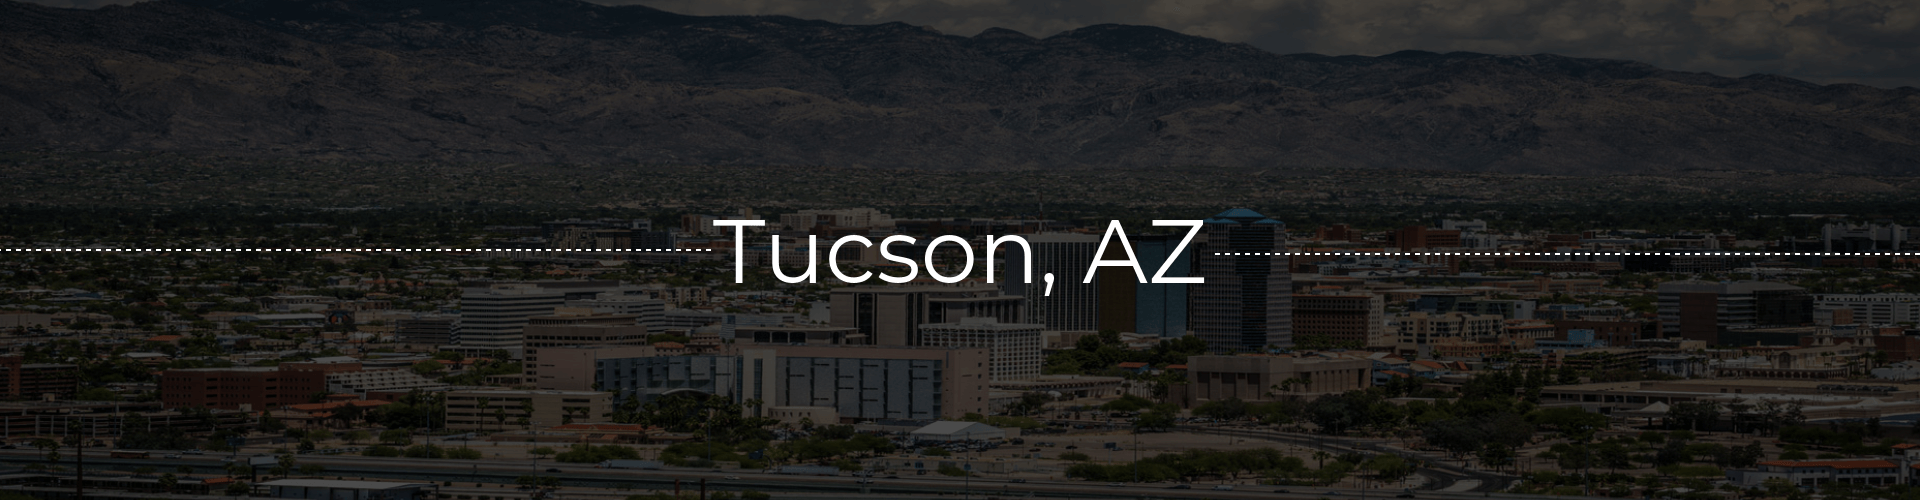 app developers tucson